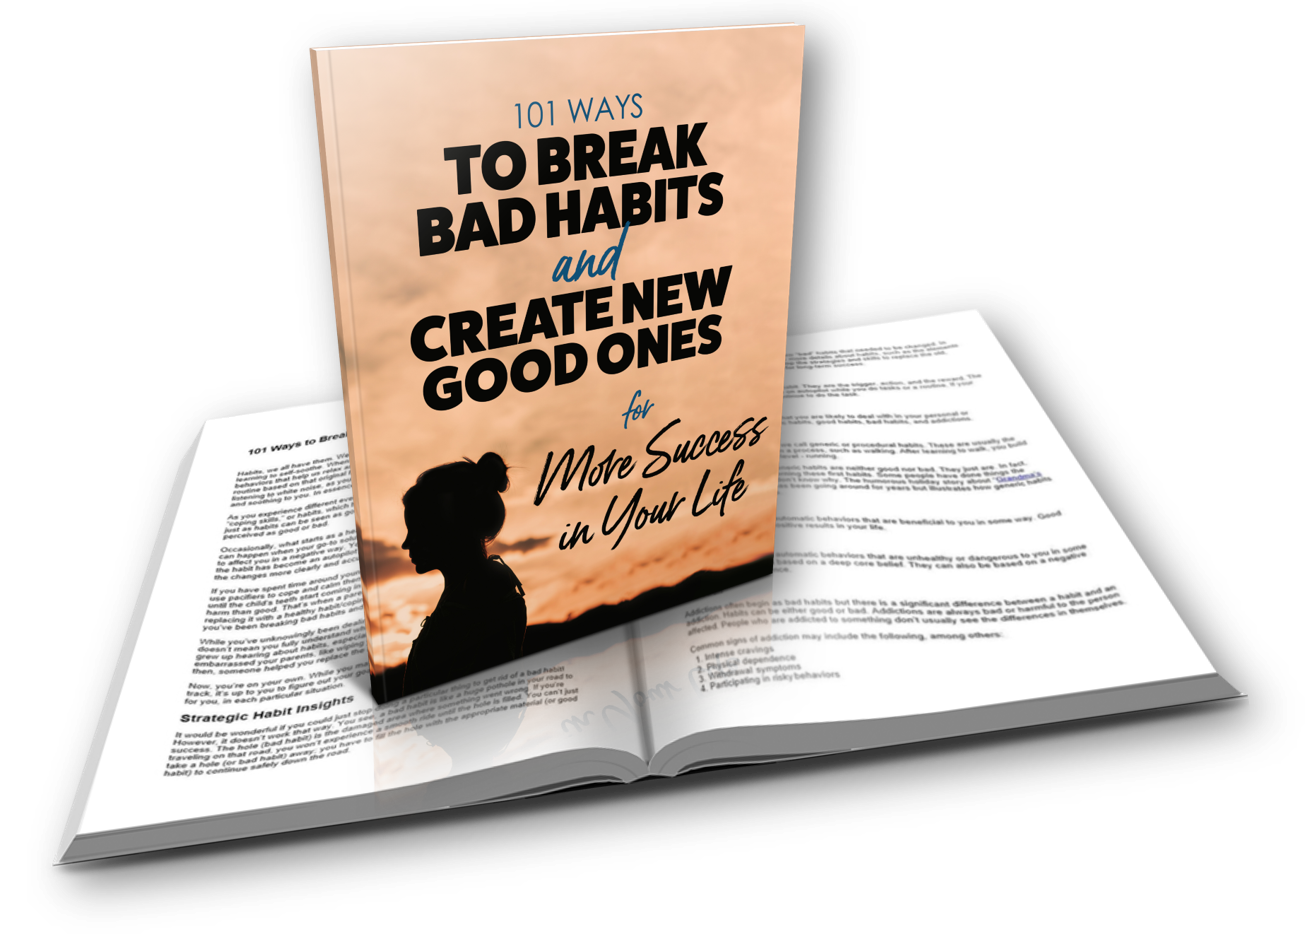 Breaking Bad Habits Report